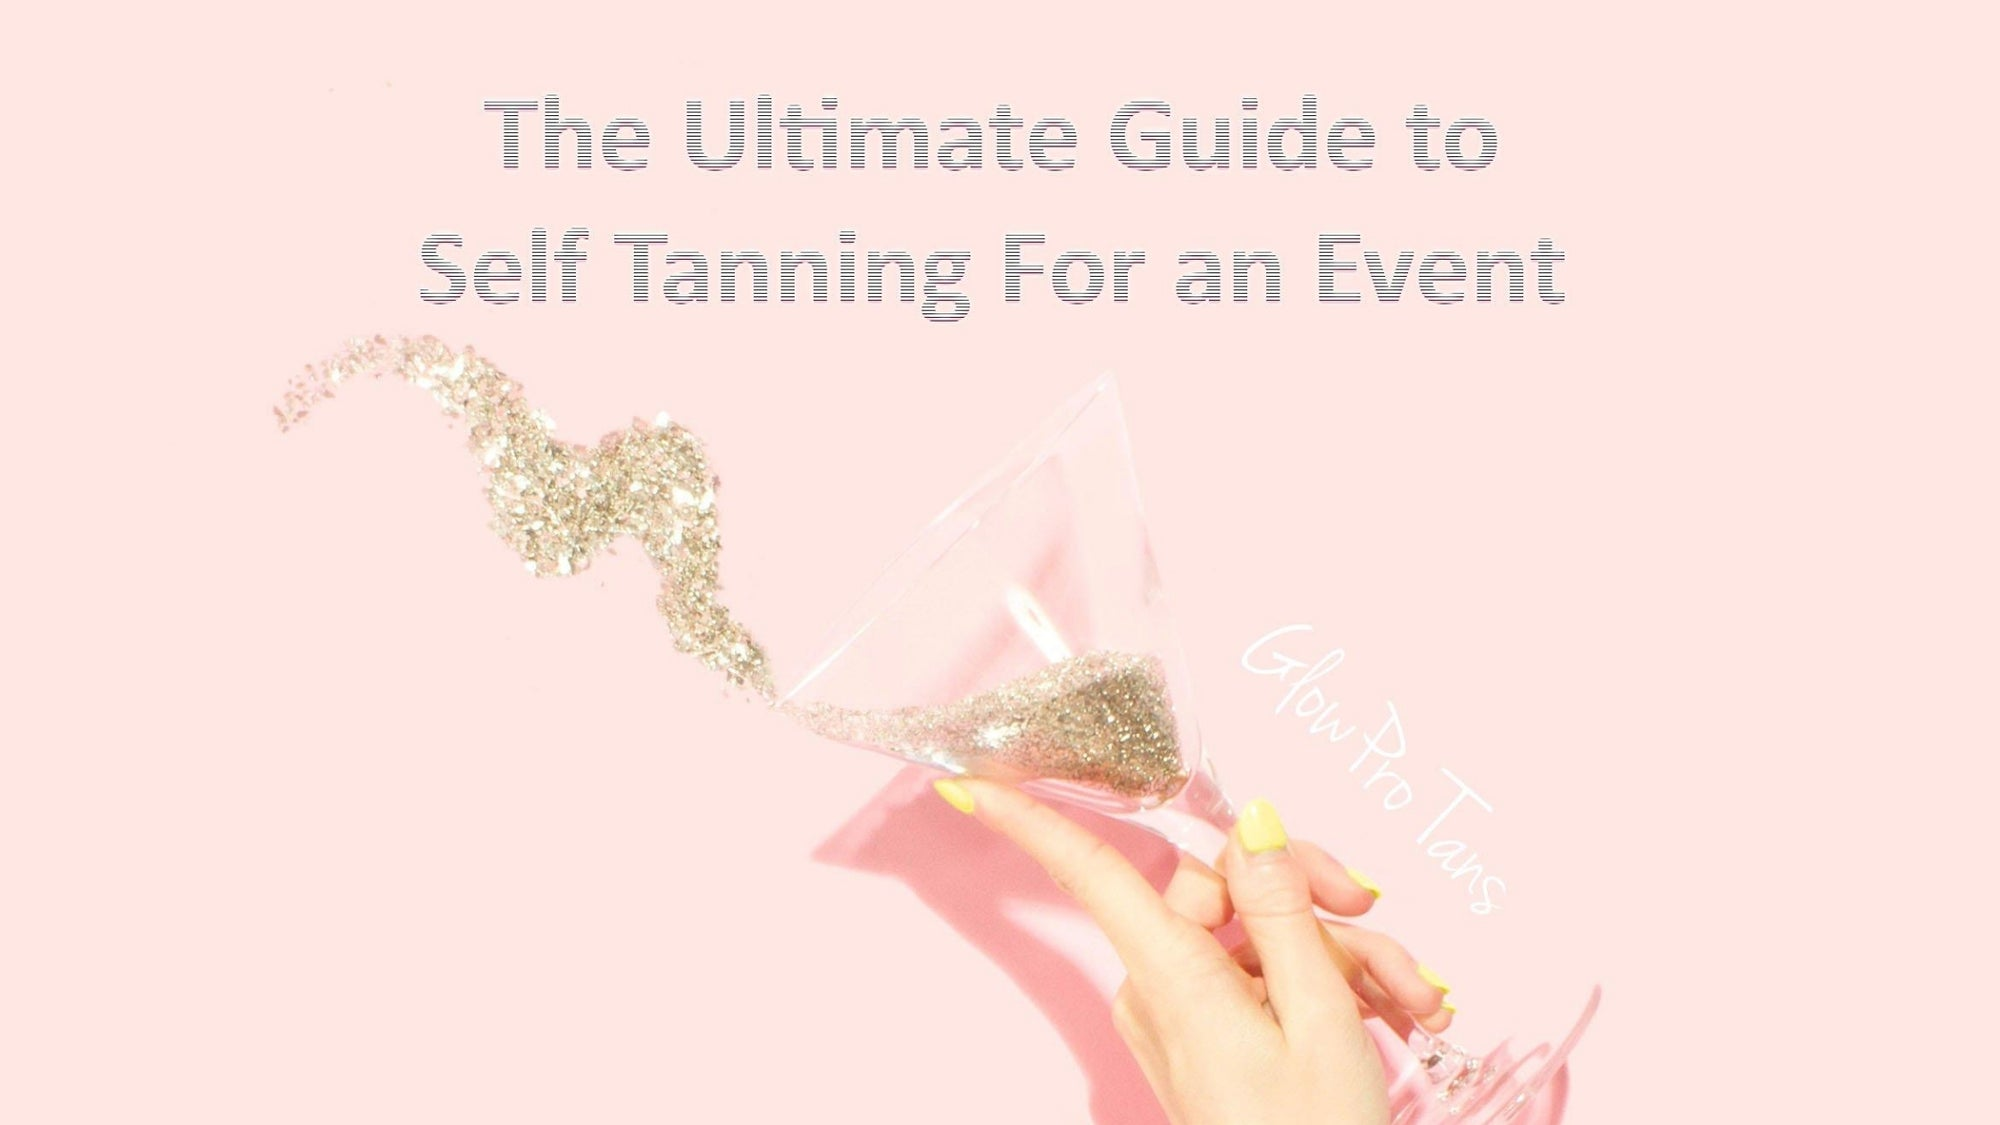 The Ultimate Guide to Self Tanning For an Event